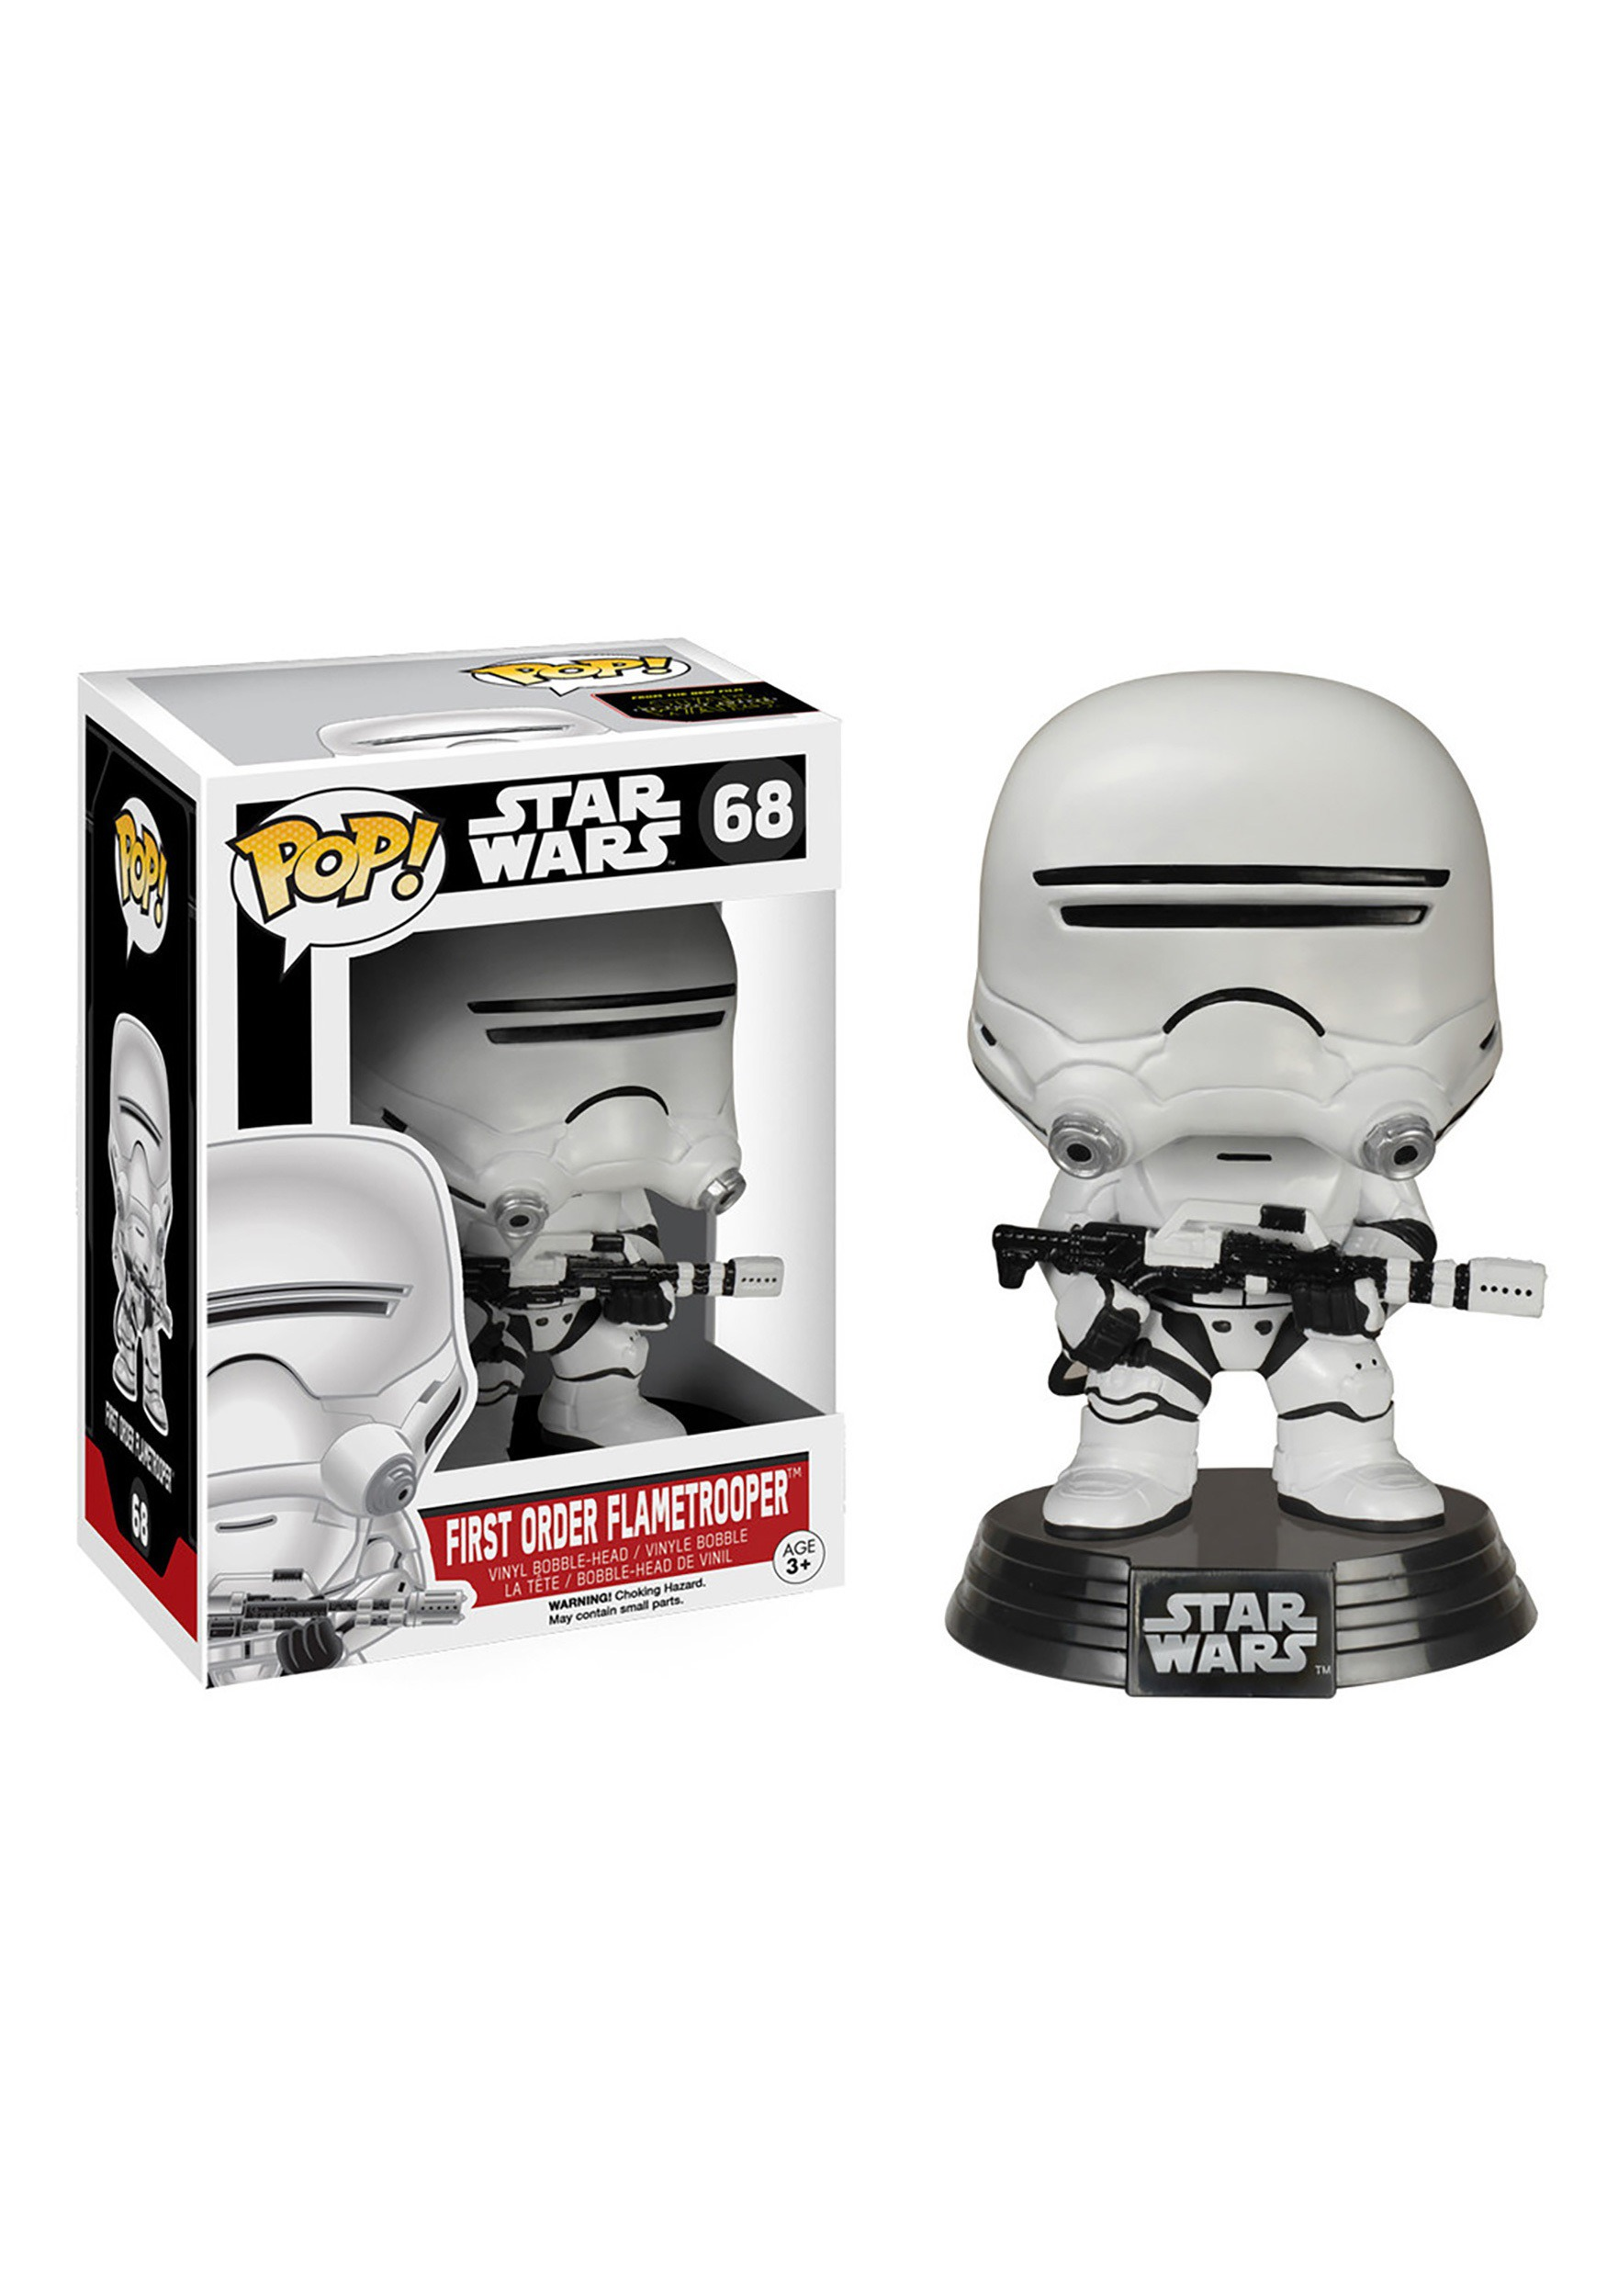 POP! Star Wars E7 First Order Flametrooper Bobblehead Figure FN6224